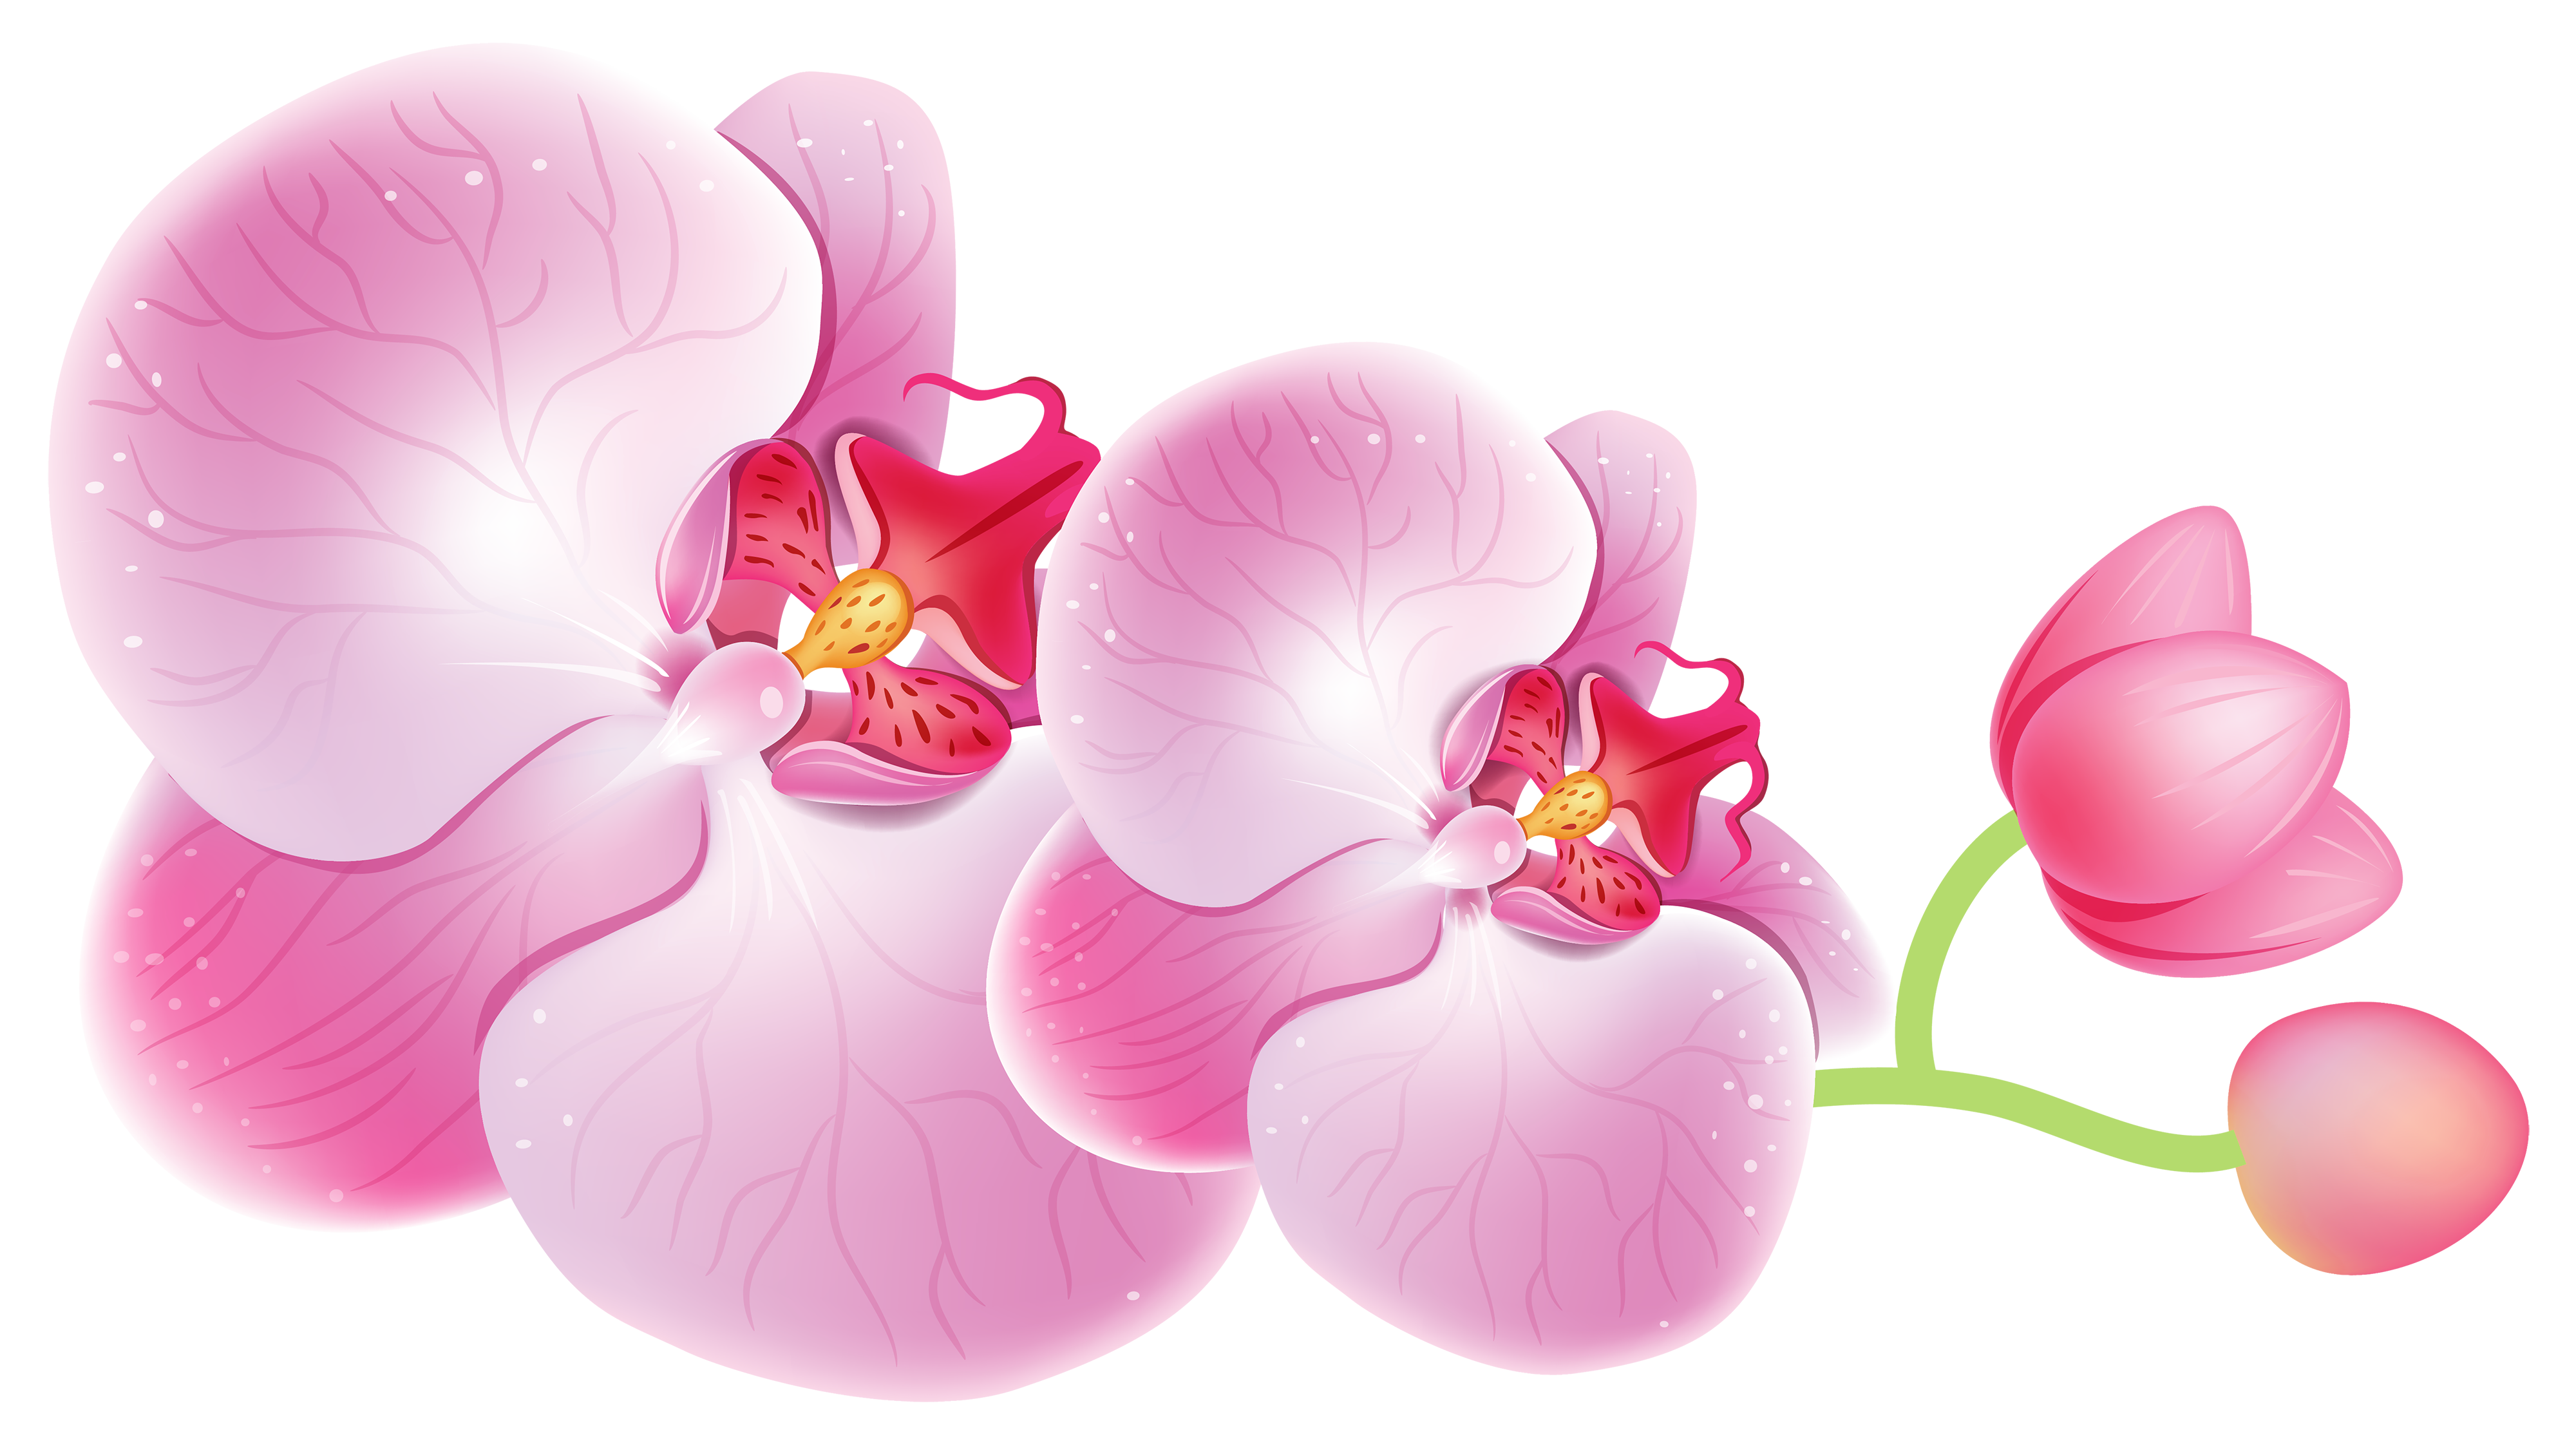 Orchid flower clipart vector free download Orchids PNG Clipart - Best WEB Clipart vector free download